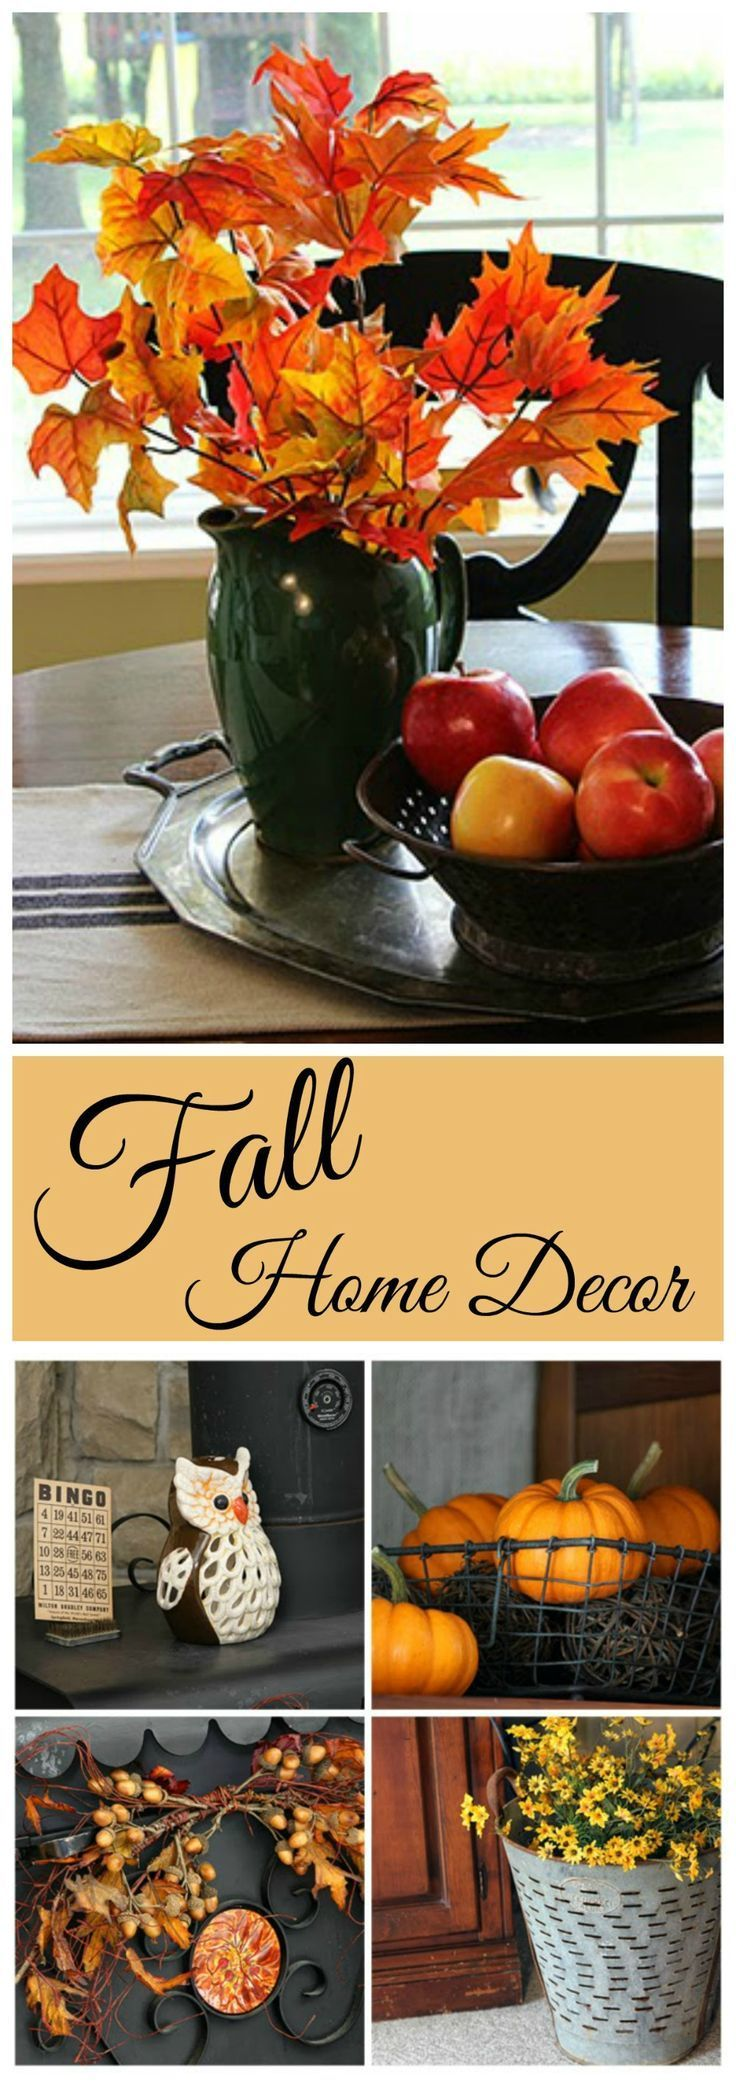 I was so excited when I was asked to participate in a fall home tour. I mean, me and fall are best buddies. We go together like apple cider and hay rides. Indian corn and cornstalks. Pumpkins and m…